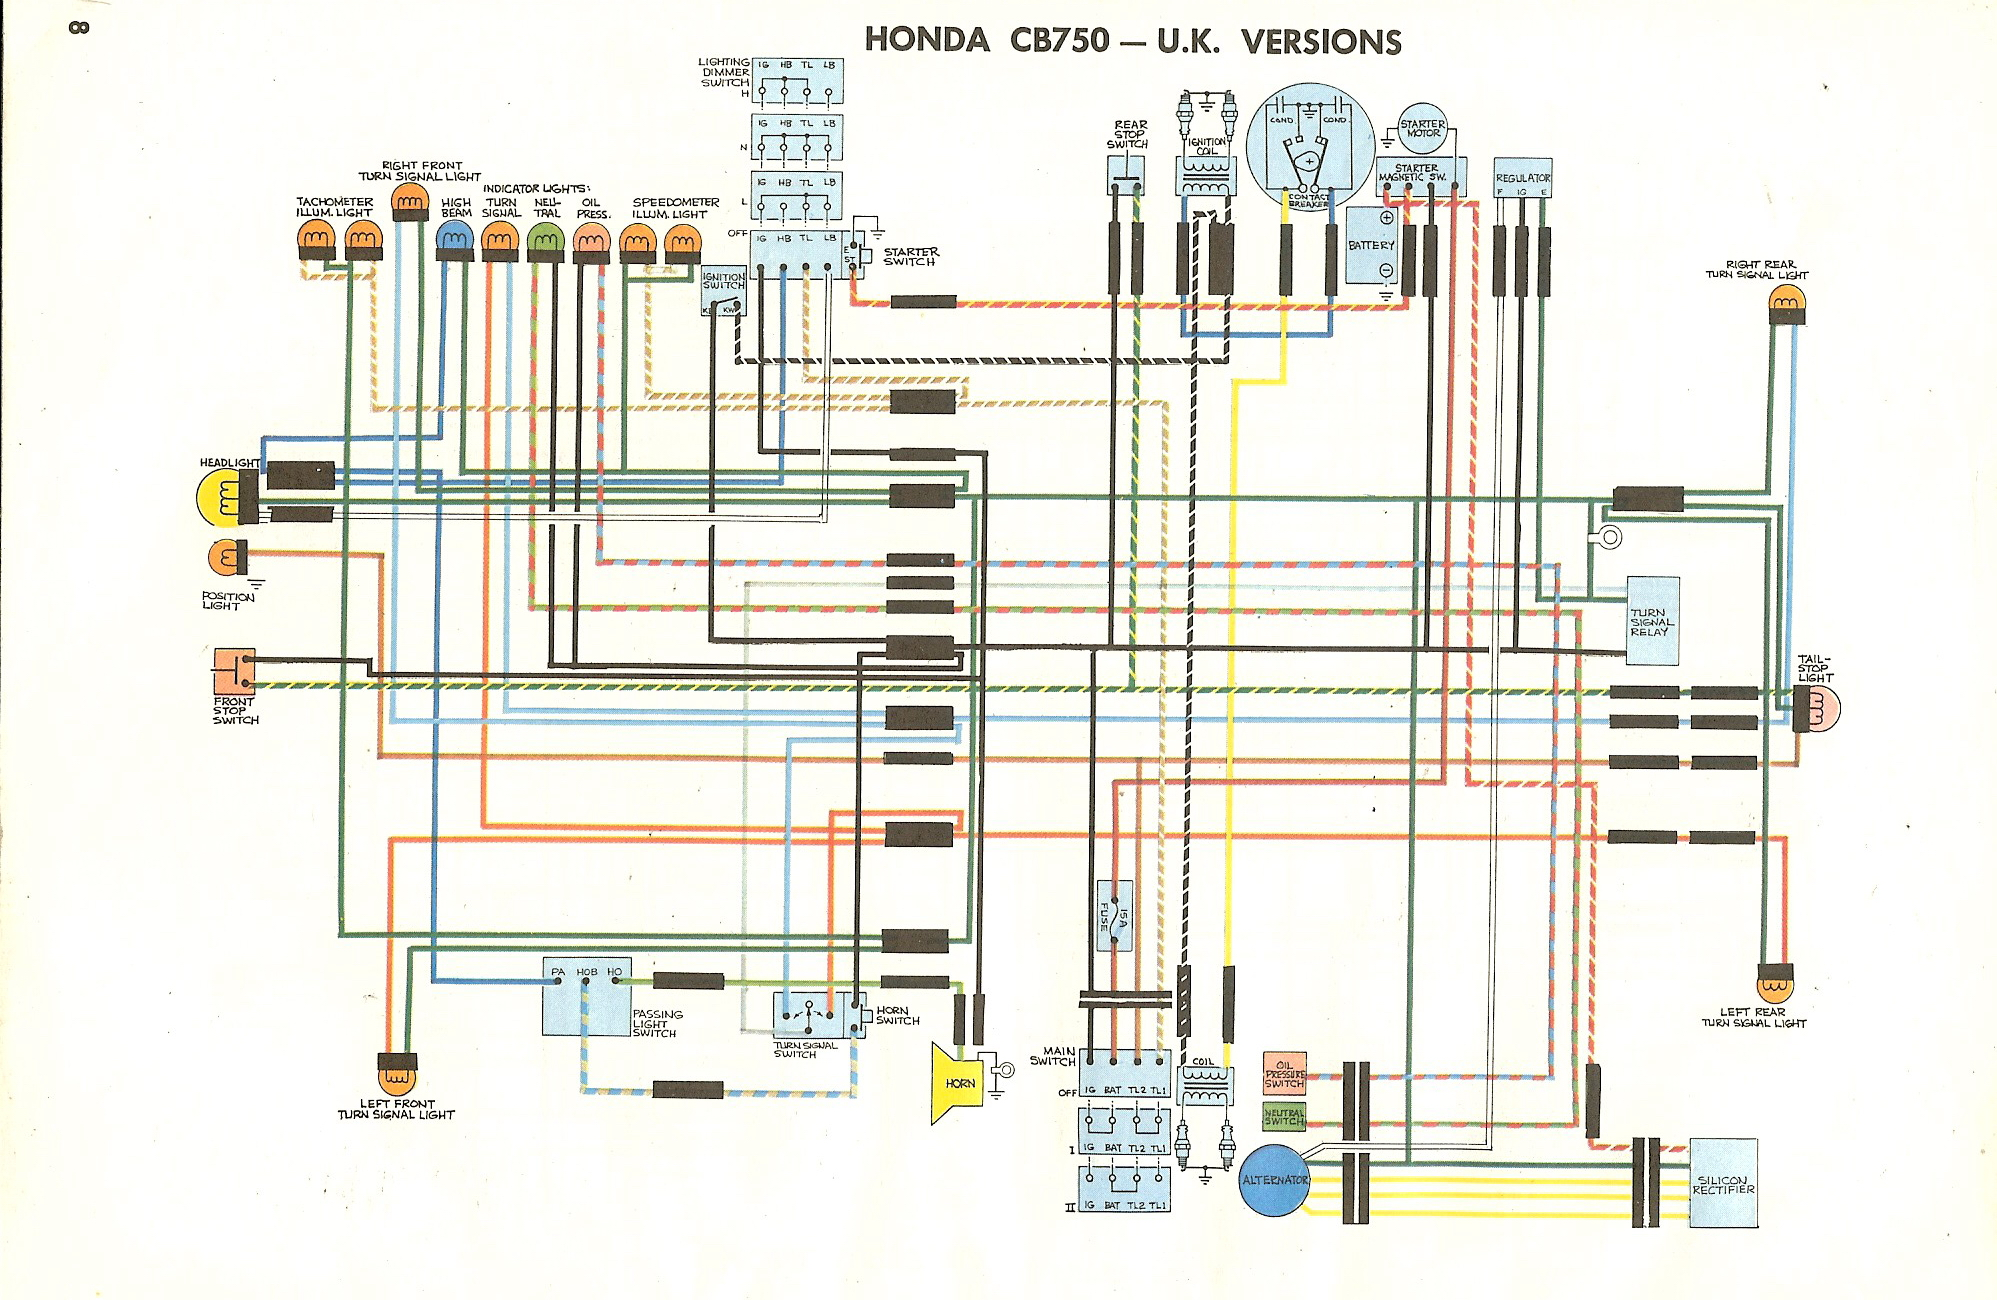 cb750k CB750 Chopper Wiring Diagram Cb750 K0 Wiring Diagram #2